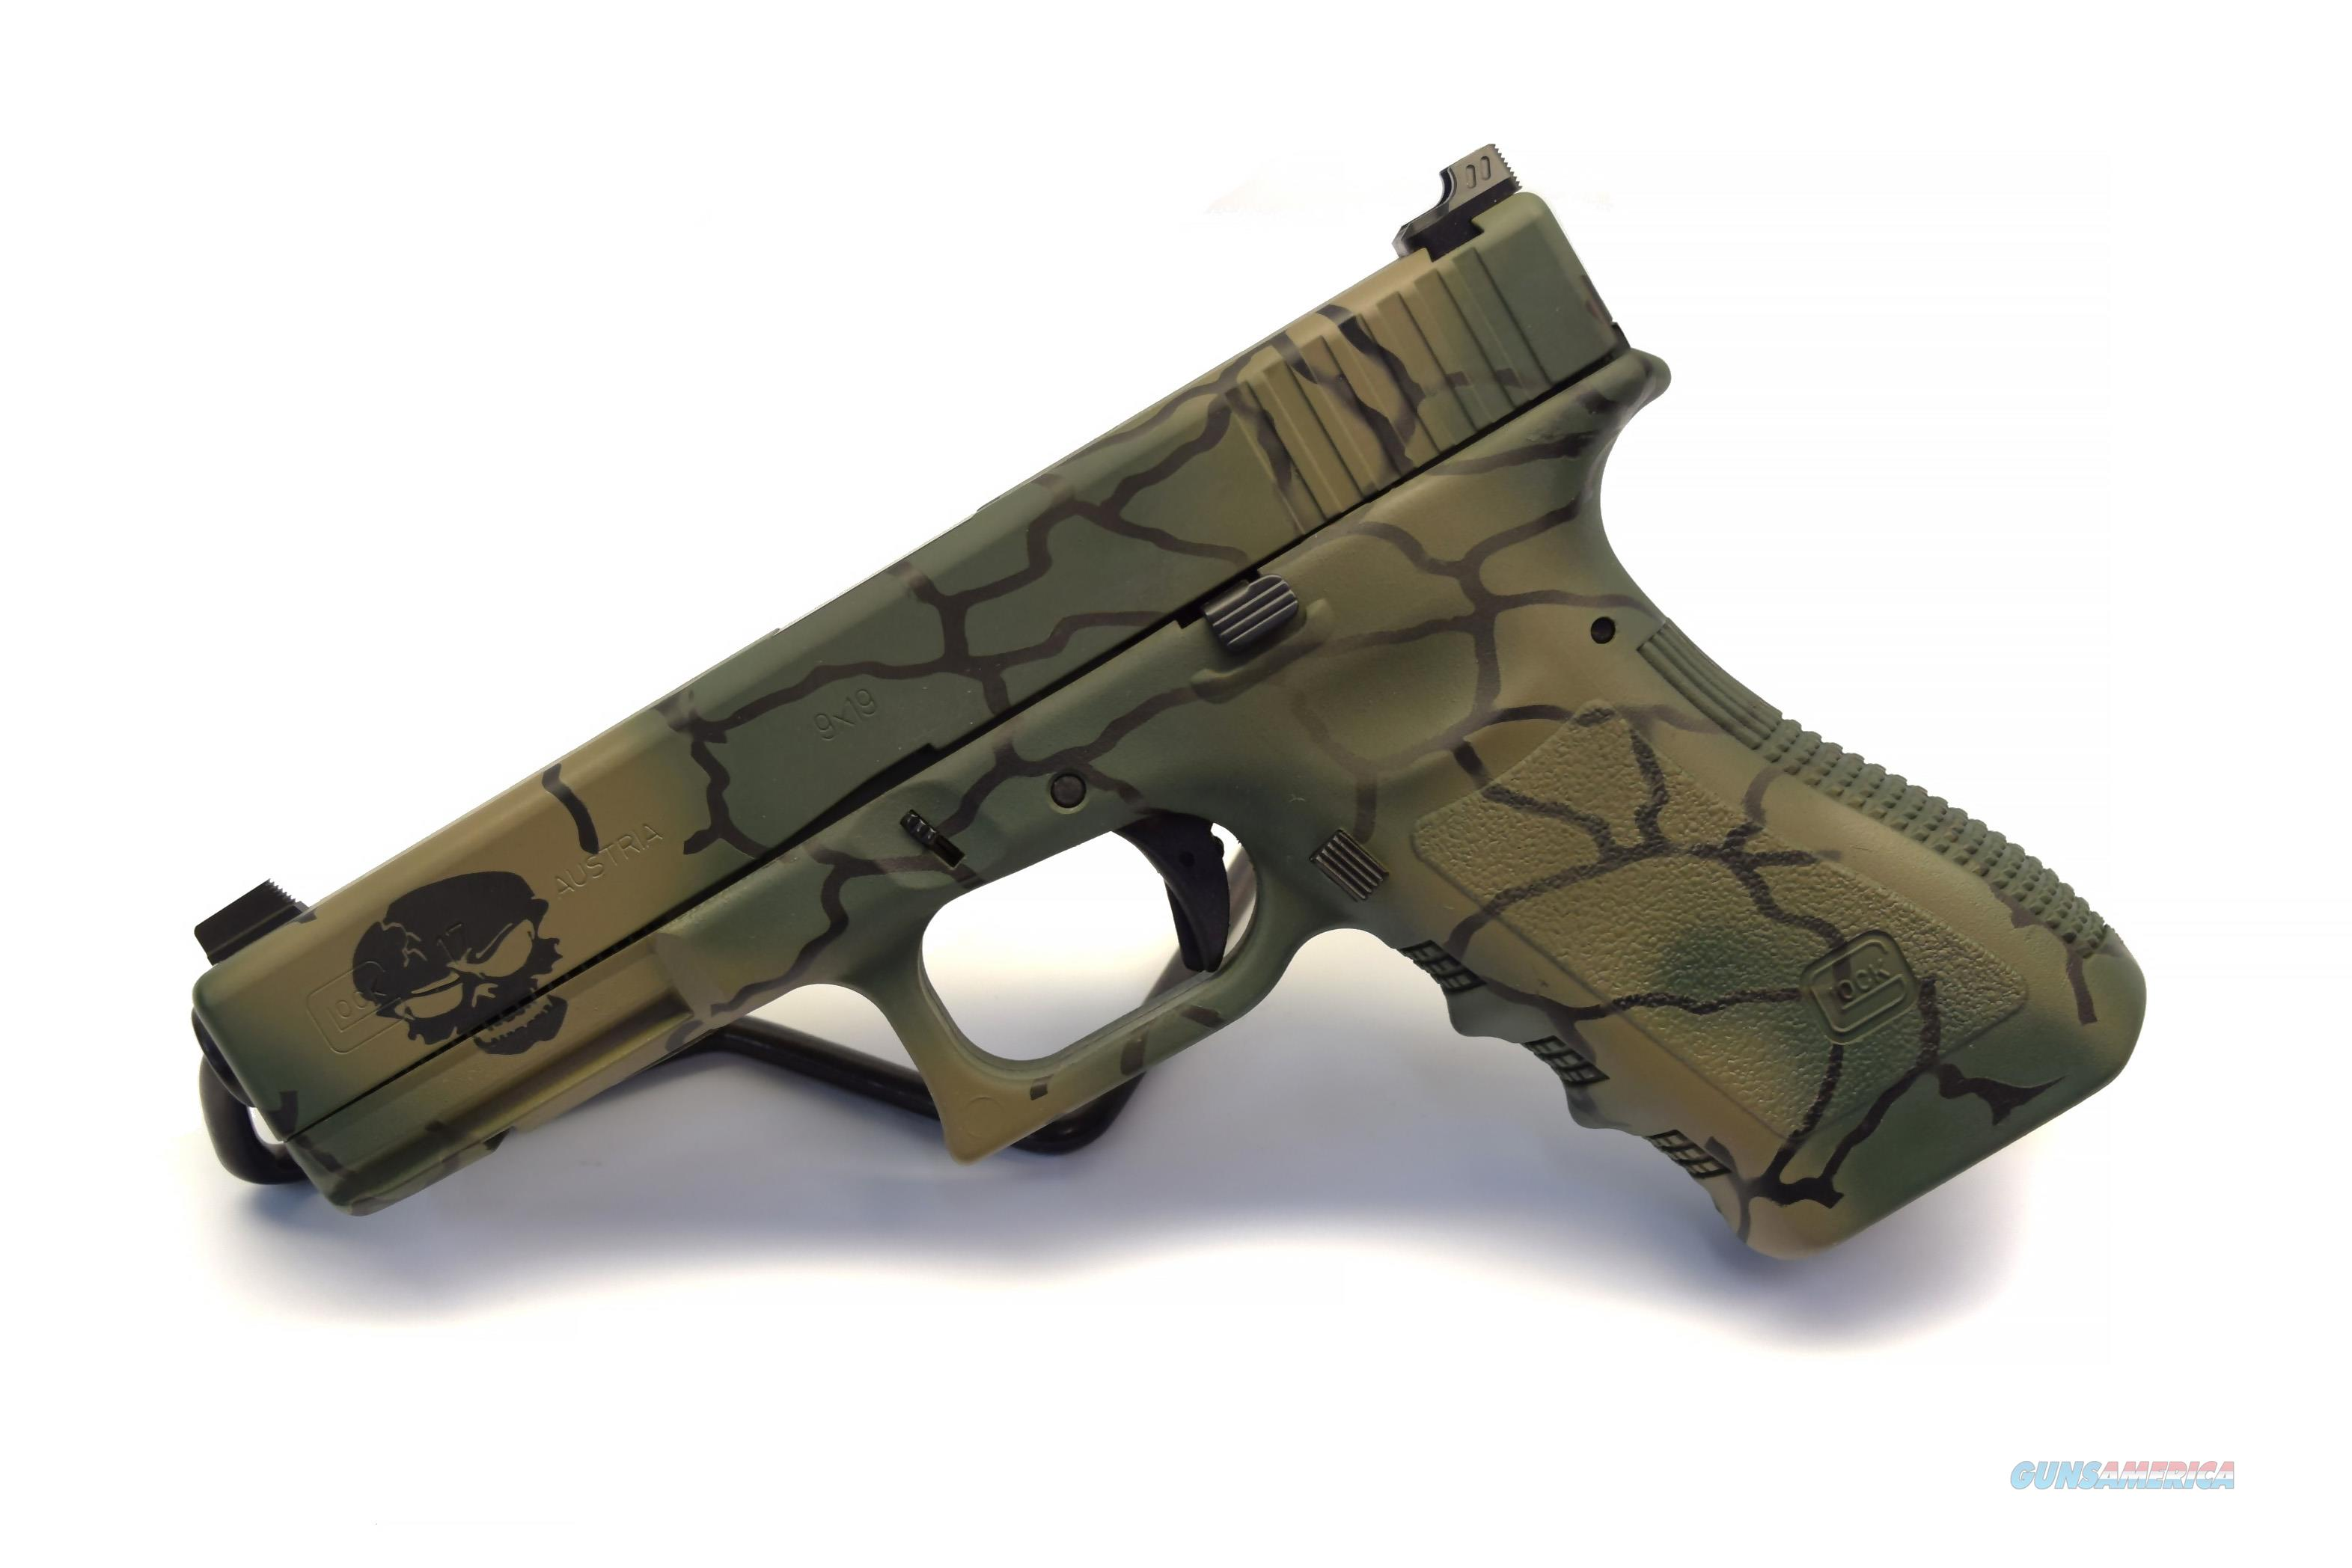 Glock 17 in Cerakote camo with Zev Battle Sights with 2 mags  Guns > Pistols > Glock Pistols > 17